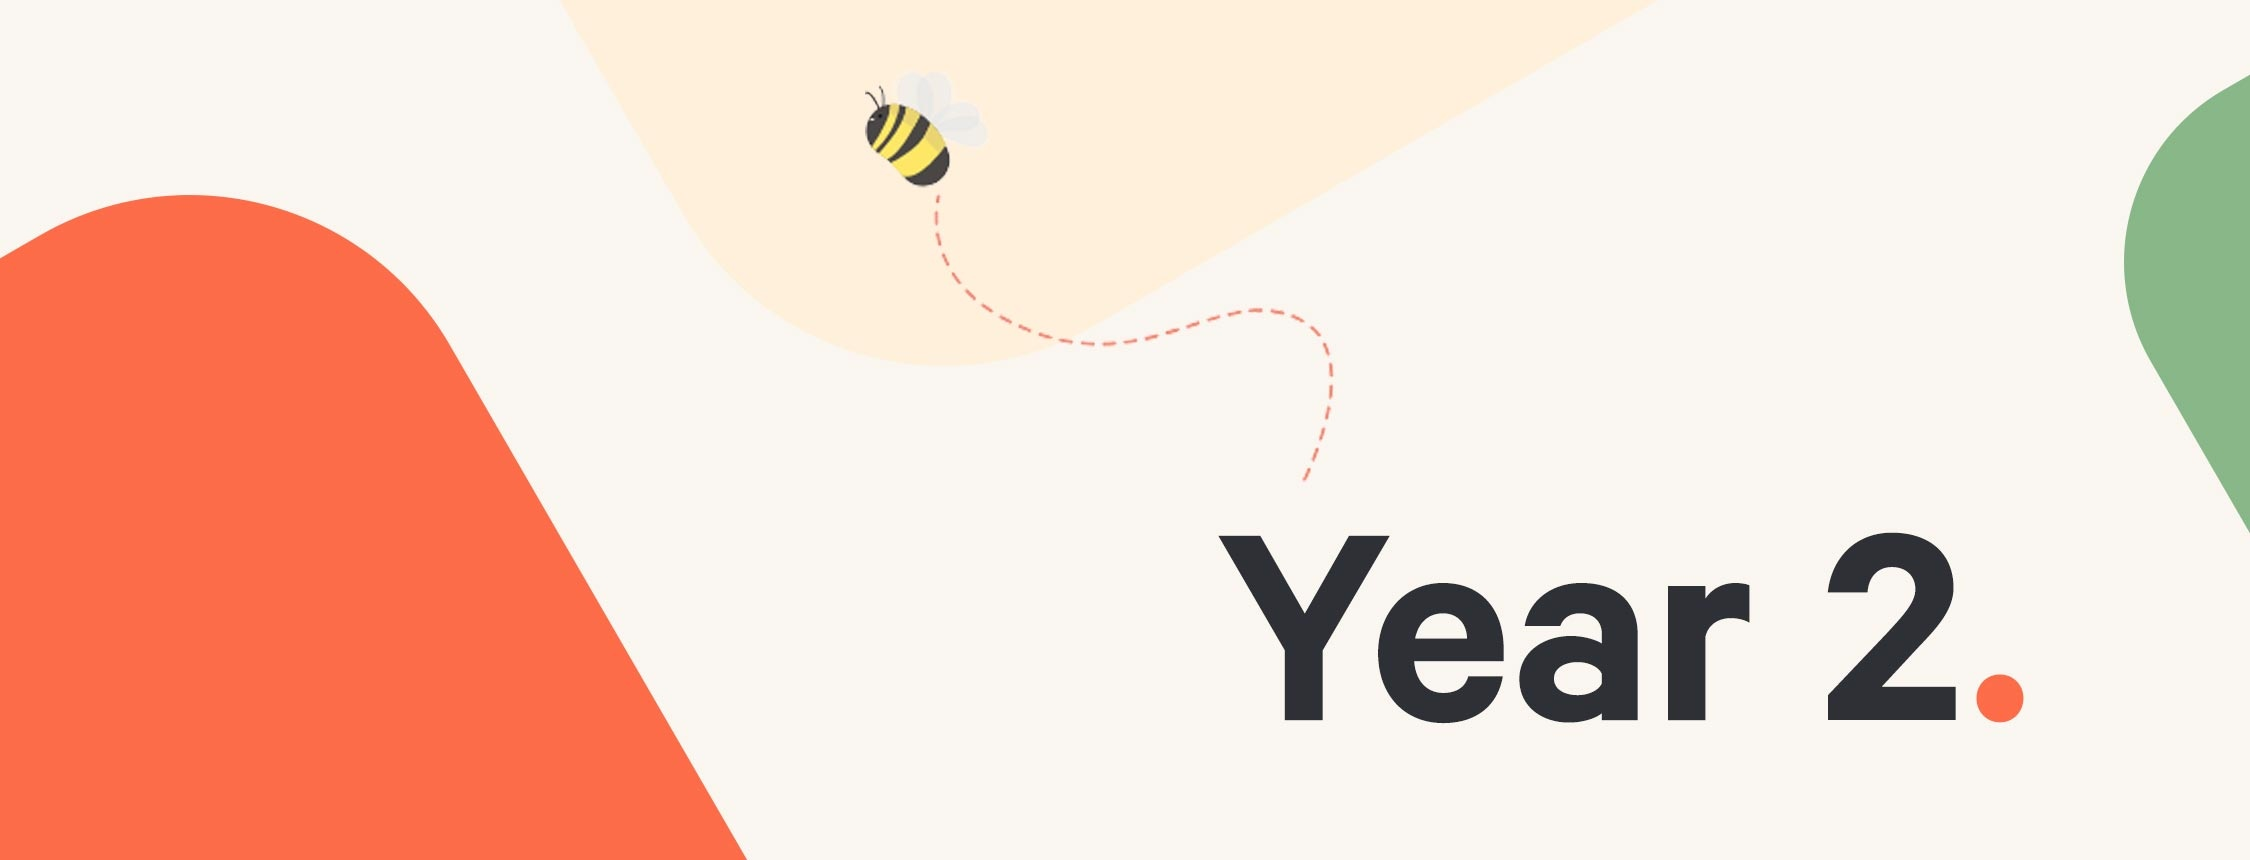 Year 2 - In-Depth HubSpot Review: 5 Years Of Real-World Use